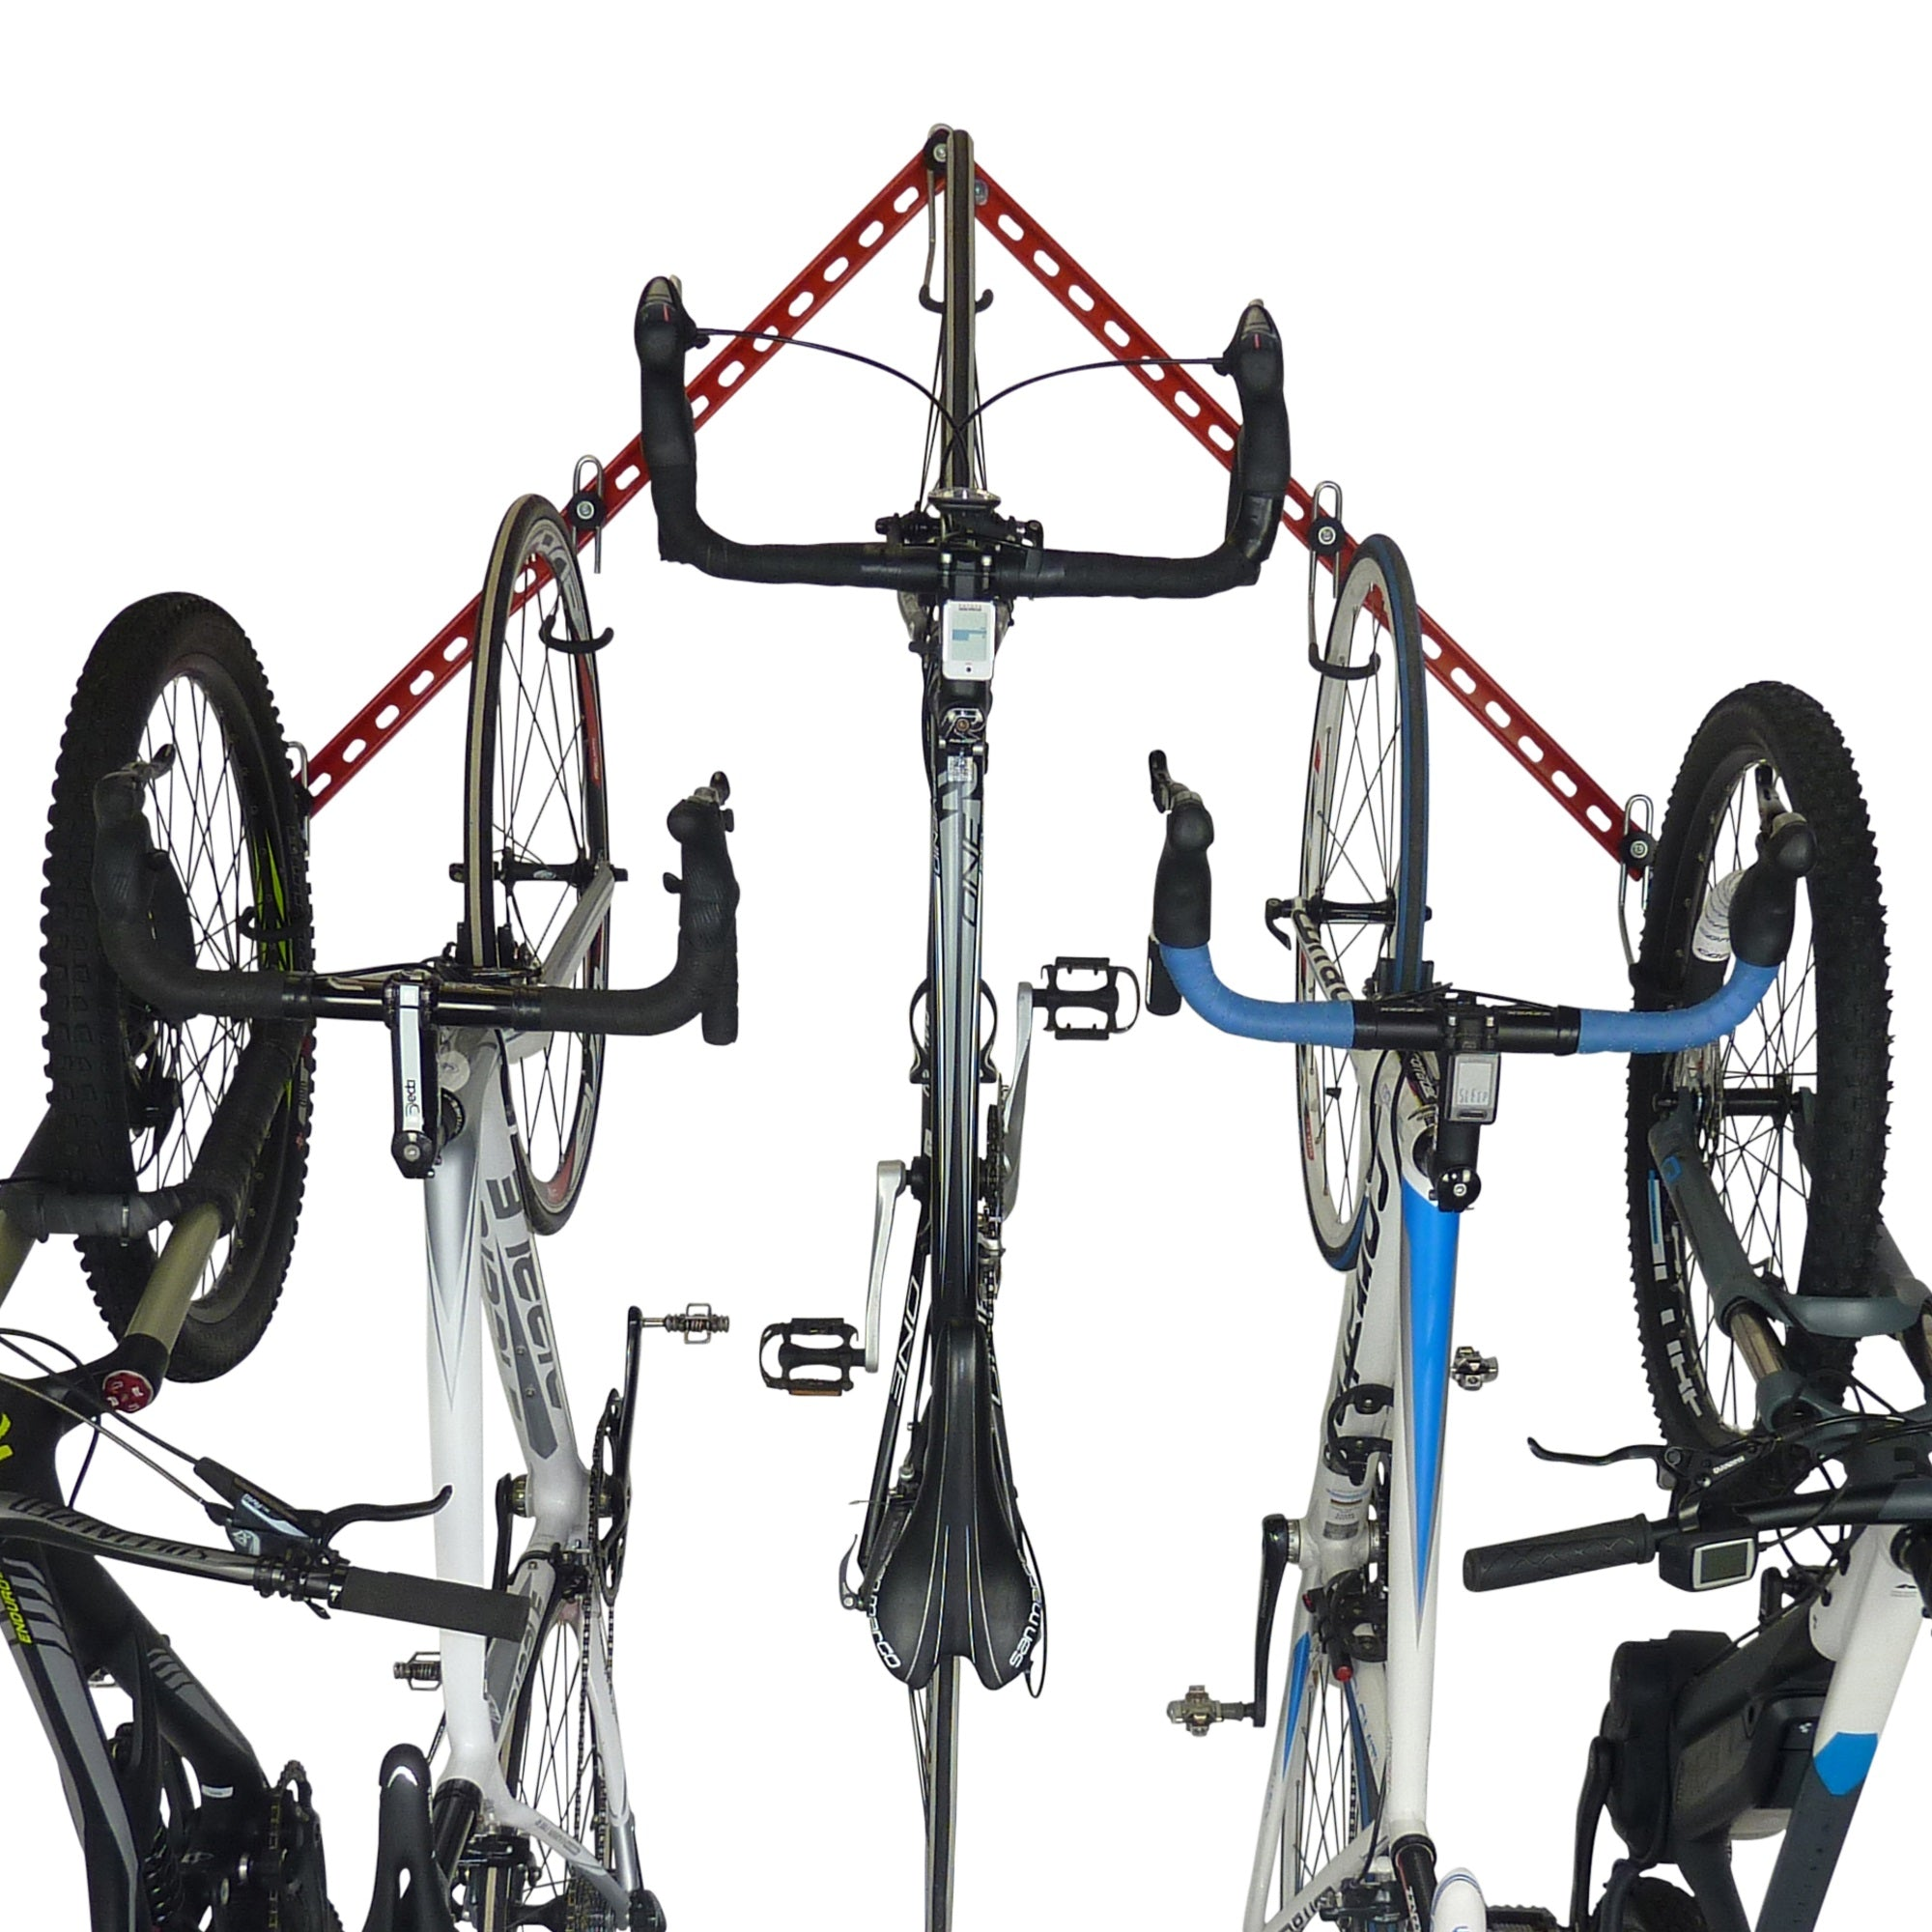 Bike storage rack and display rack for up to 6 bikes